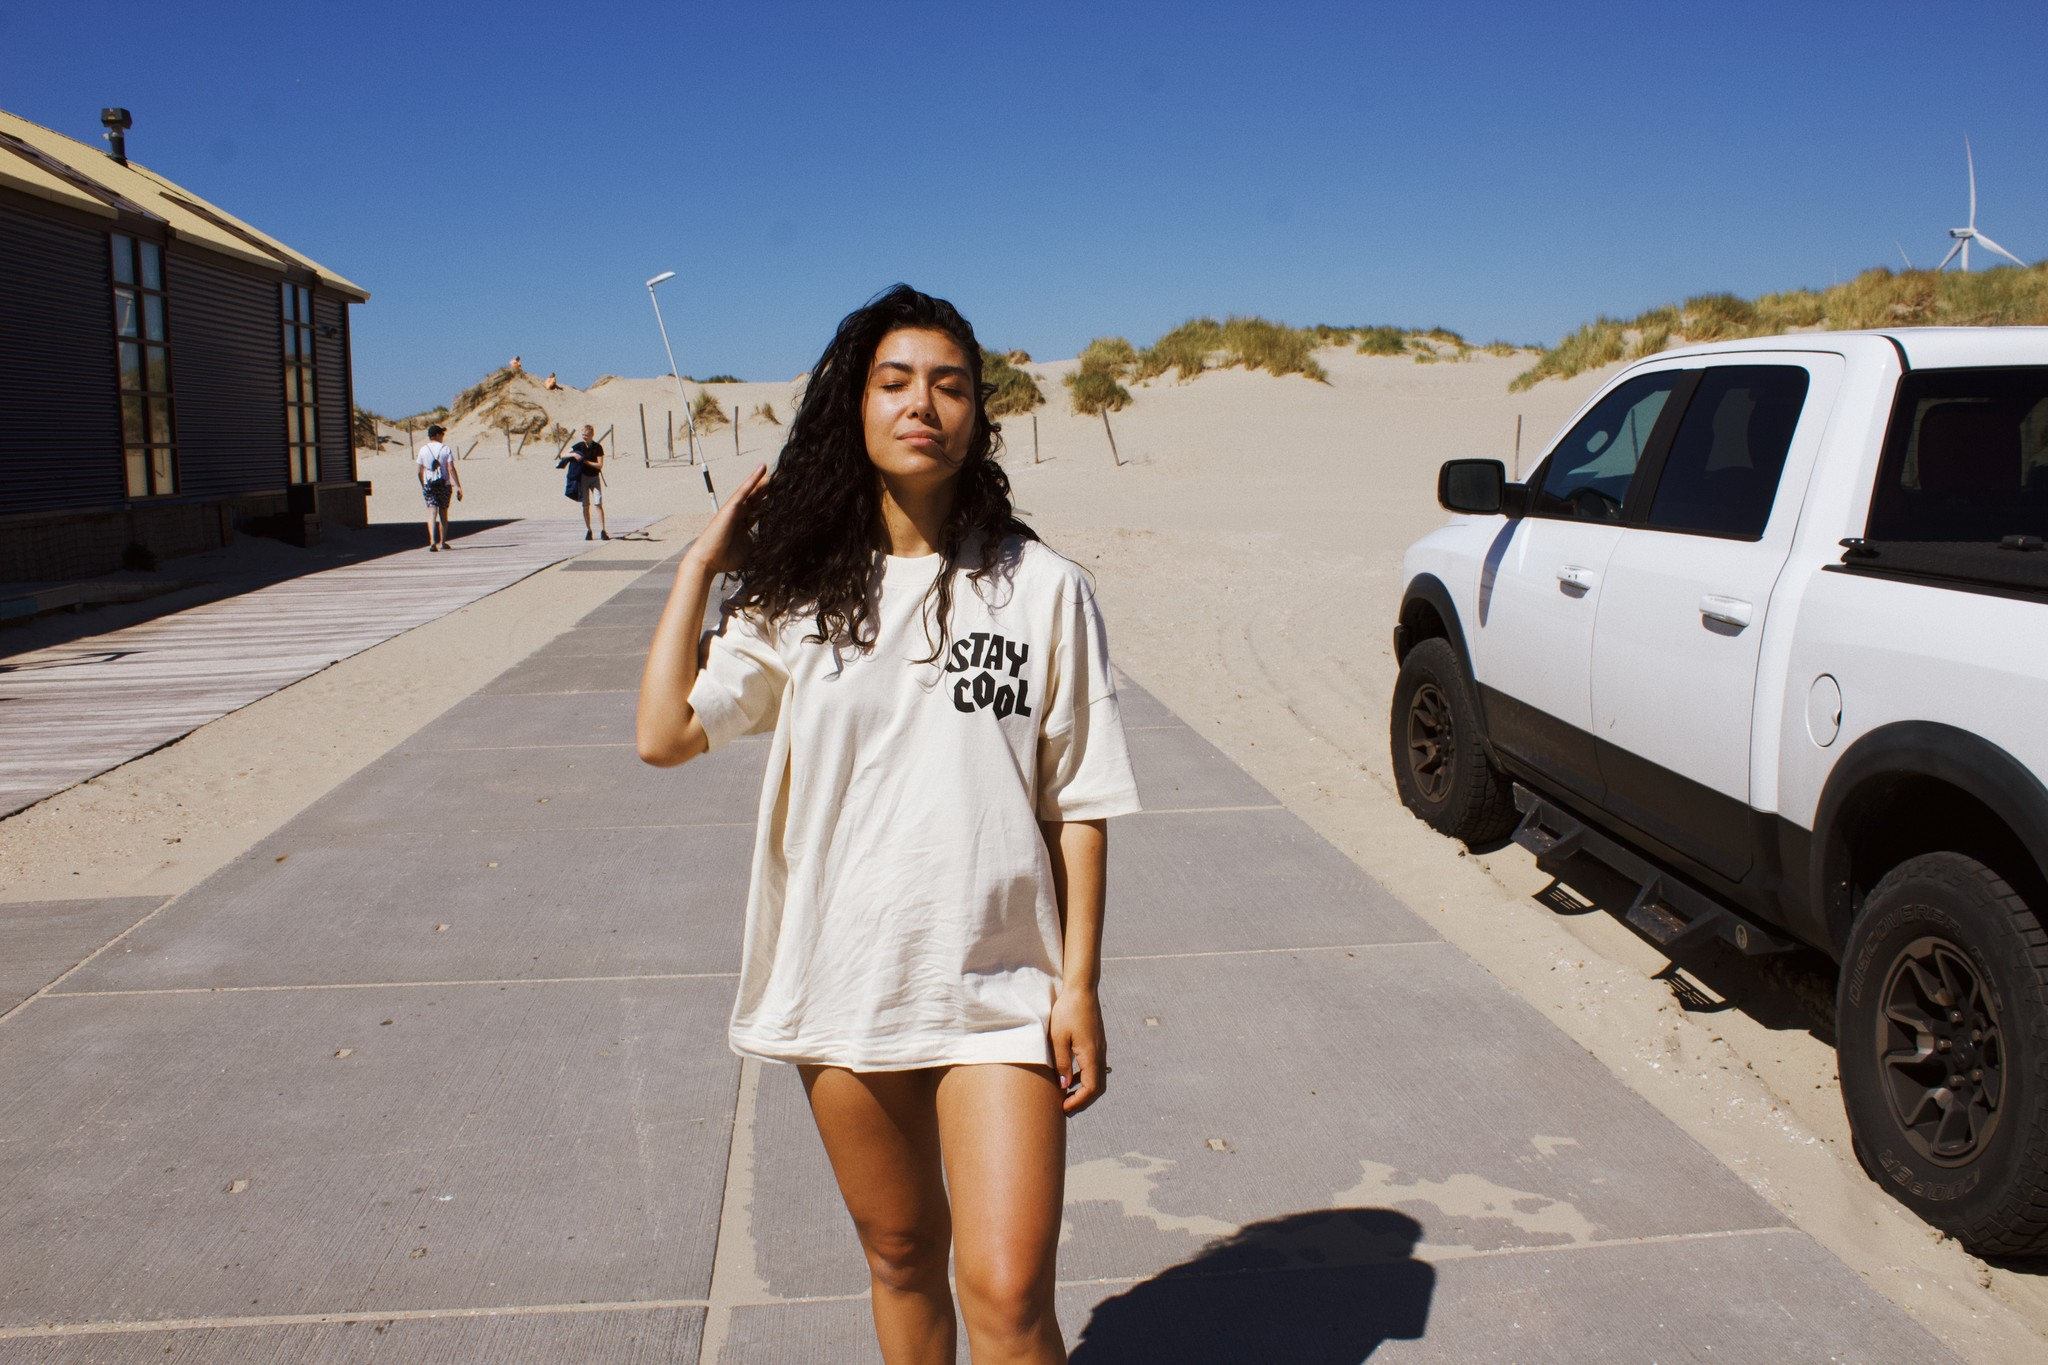 By Moise STAY COOL SHIRT